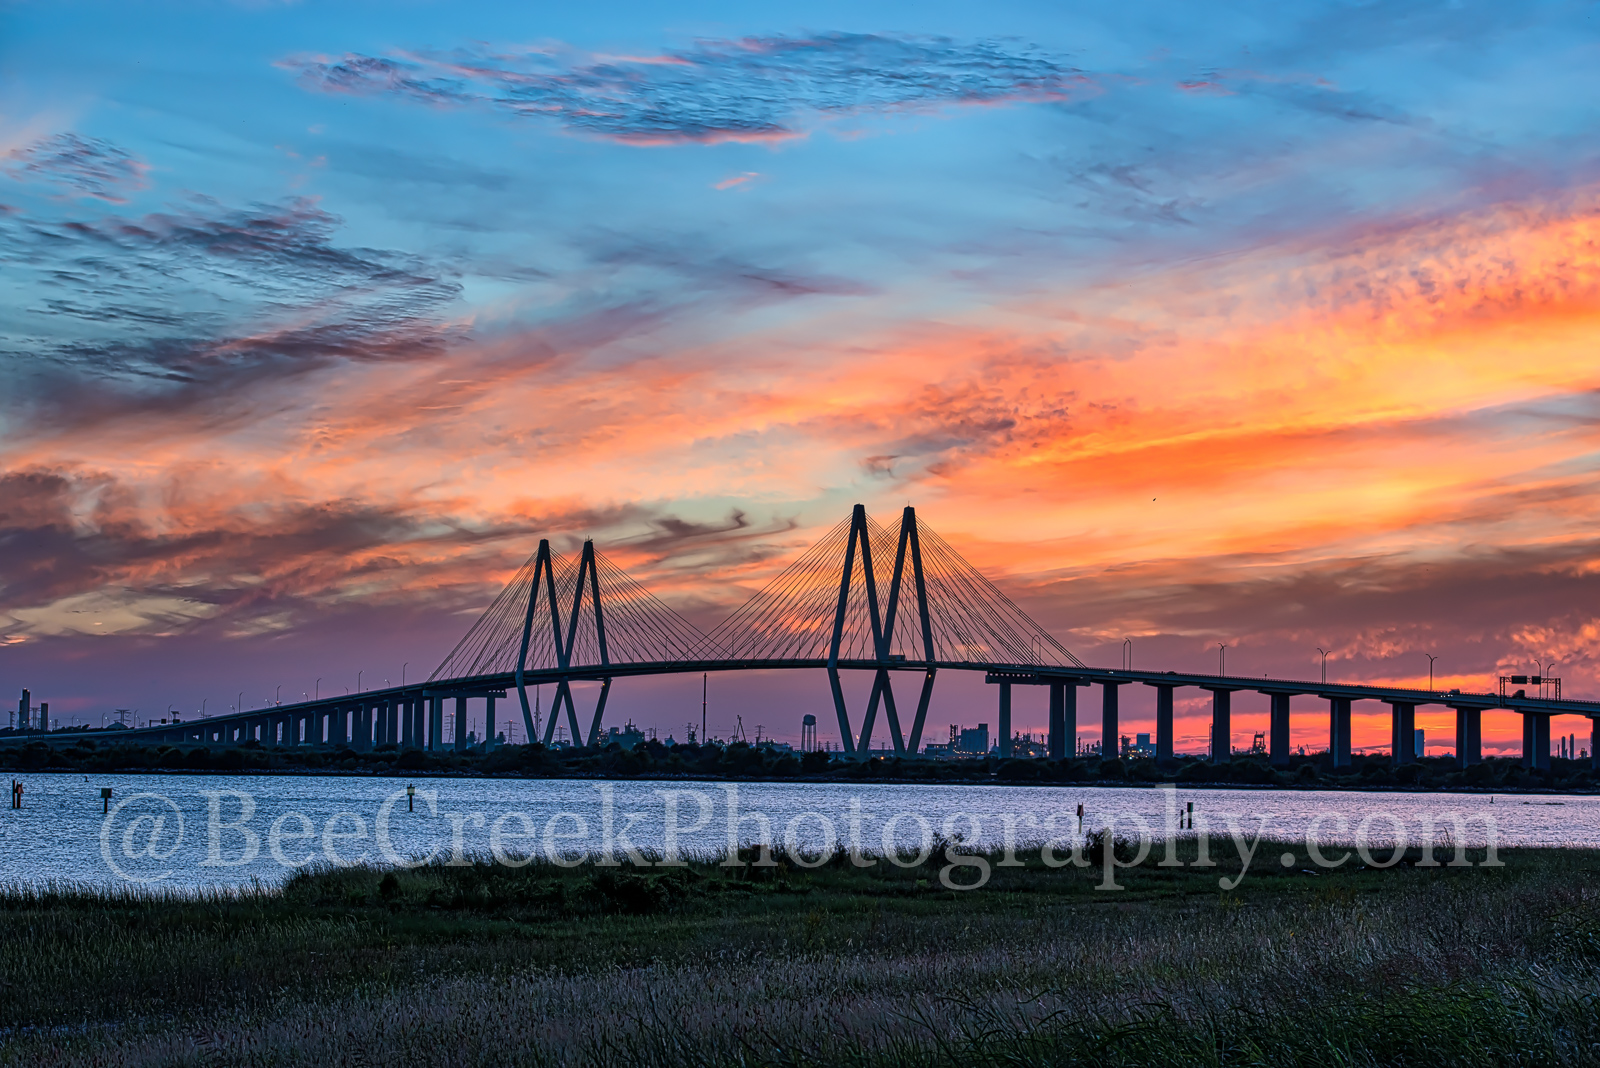 Fiery Skies Over Fred Hartman Bridge - We had a hard time picking which image to select of the Fred Hartman Bridge on the ship...